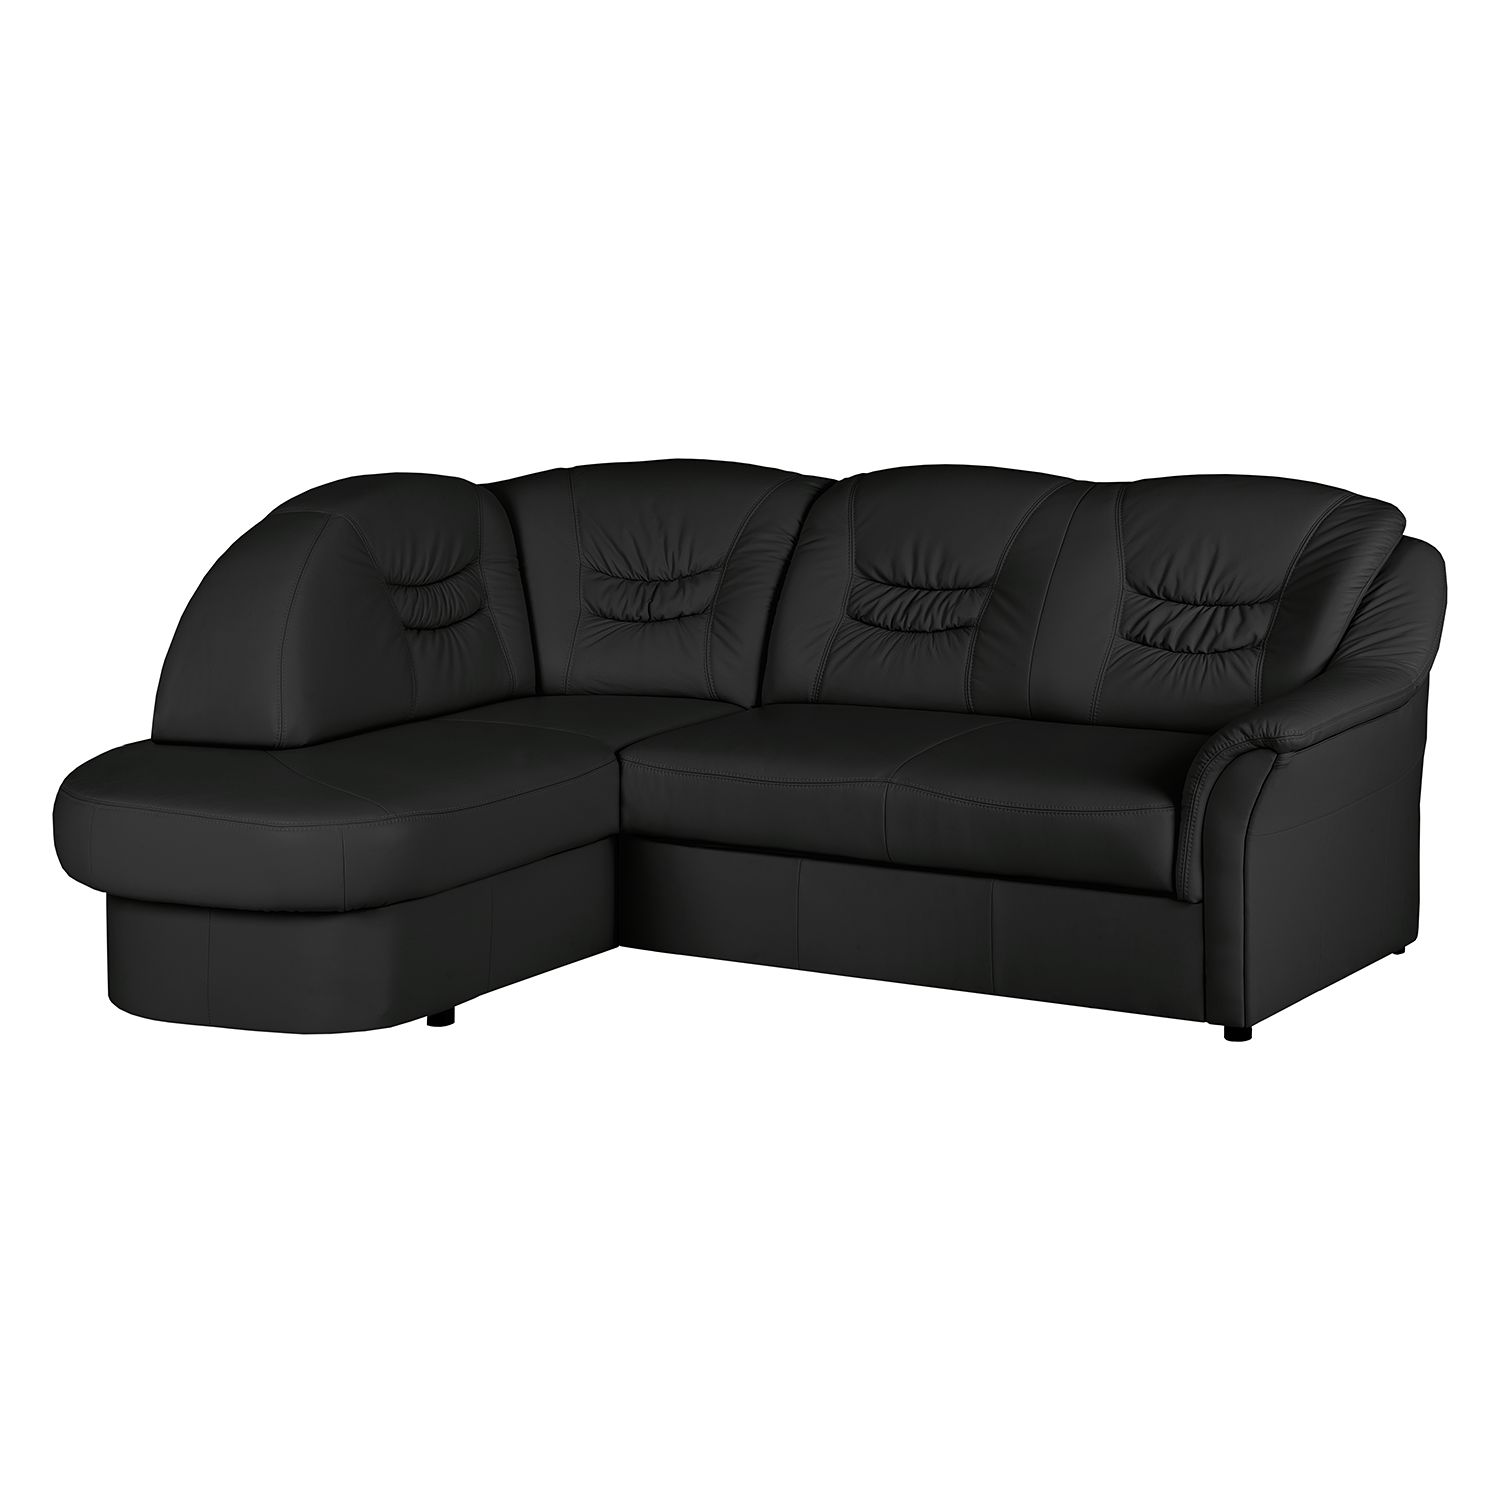 ecksofa parnu echtleder longchair ottomane davorstehend links s couch ebay. Black Bedroom Furniture Sets. Home Design Ideas